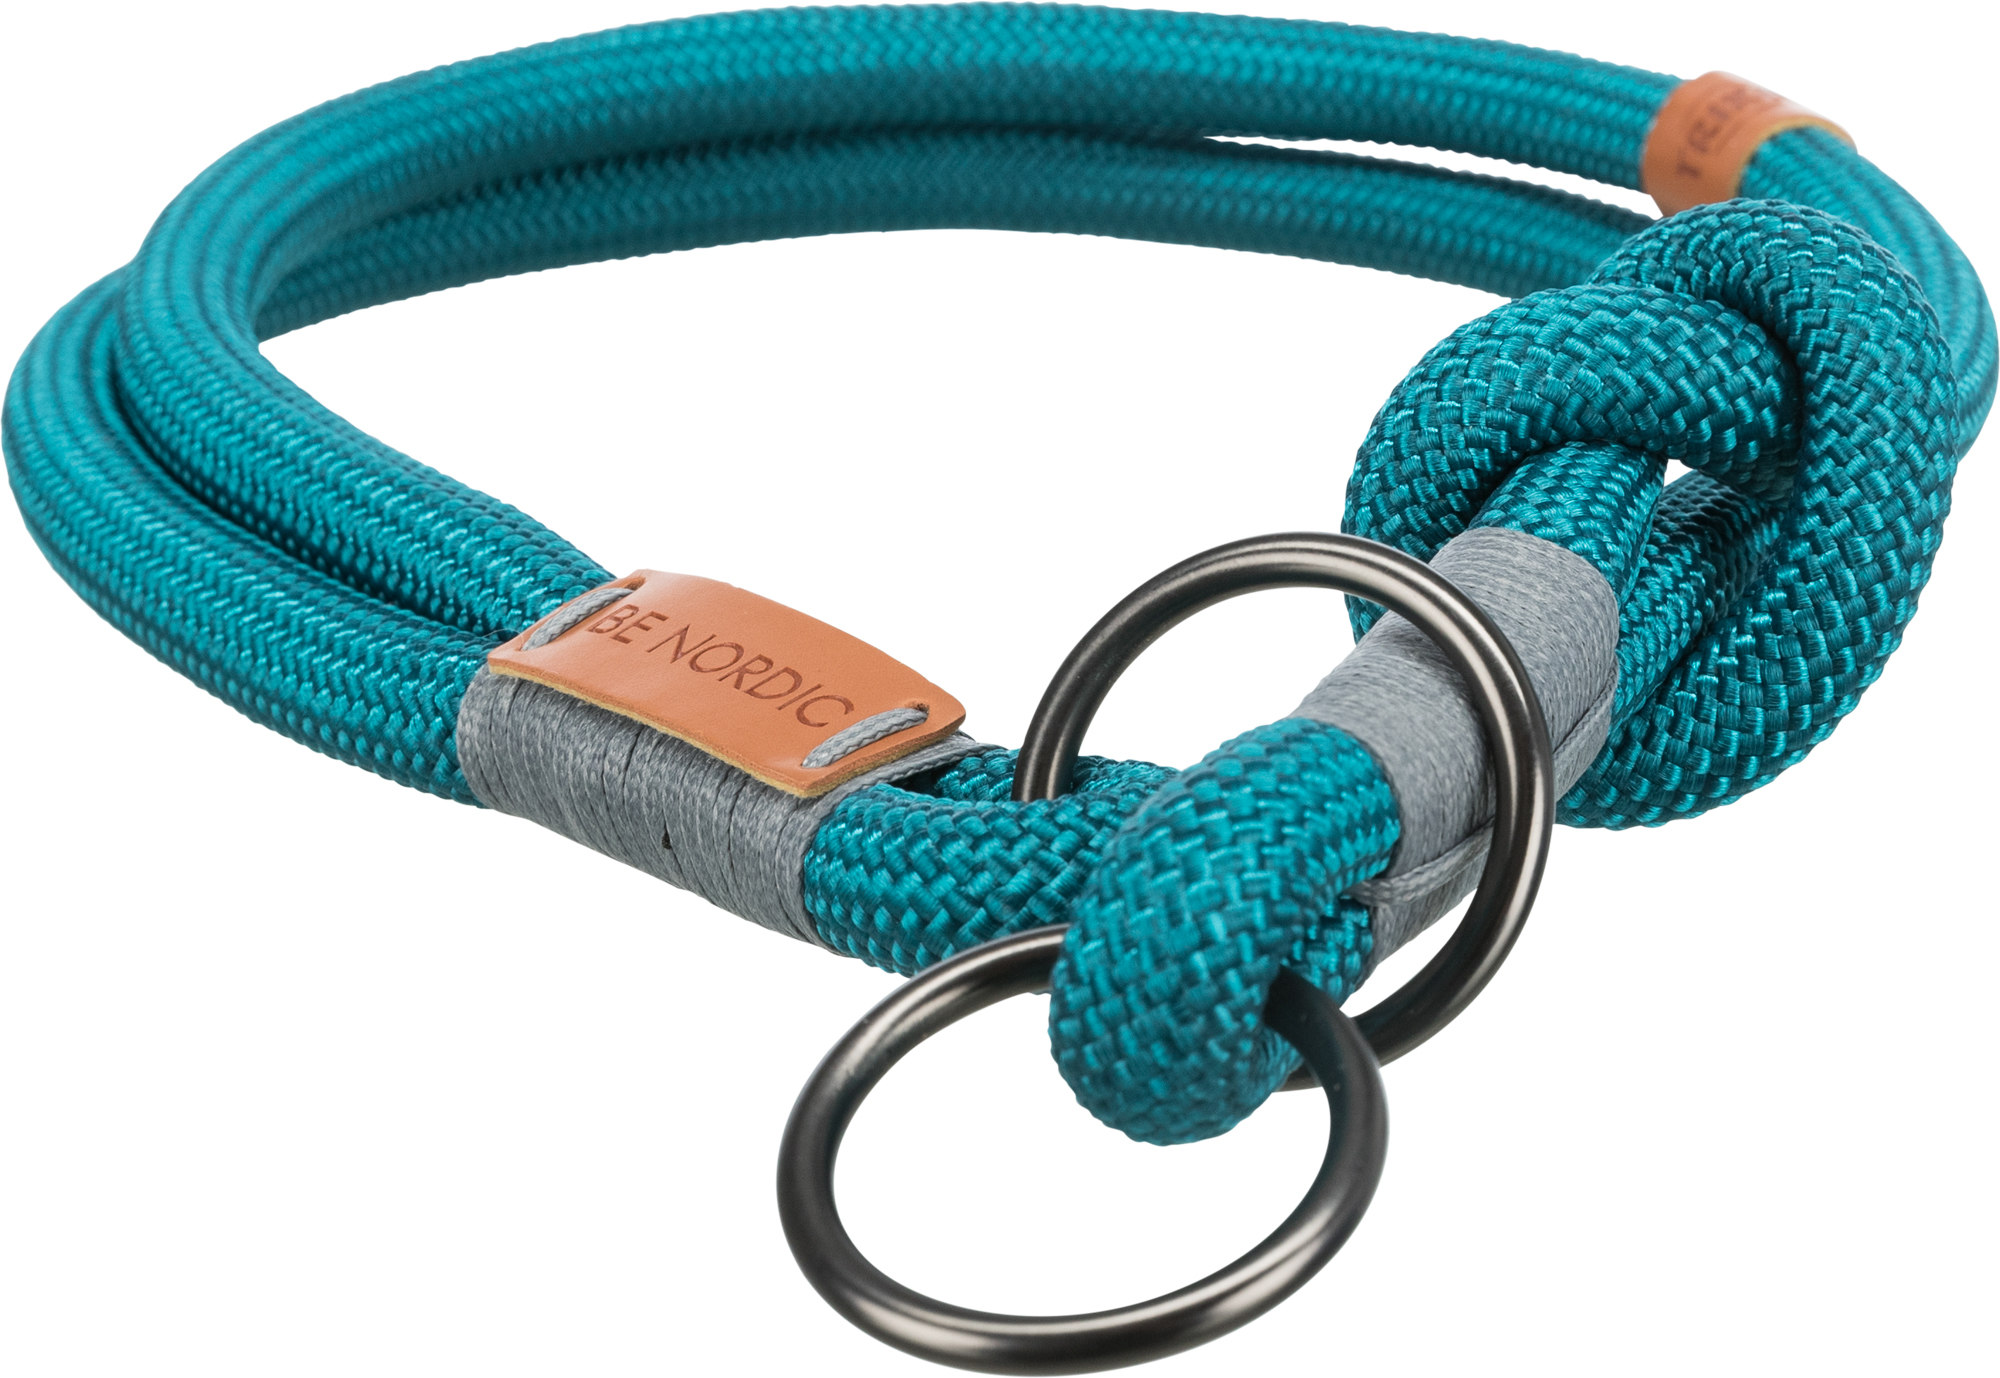 TRIXIE BE NORDIC Zug-Stopp-Halsband TRIXIE BE NORDIC Zug-Stopp-Halsband, XS–S: 30 cm/ø 6 mm, petrol/hellgrau